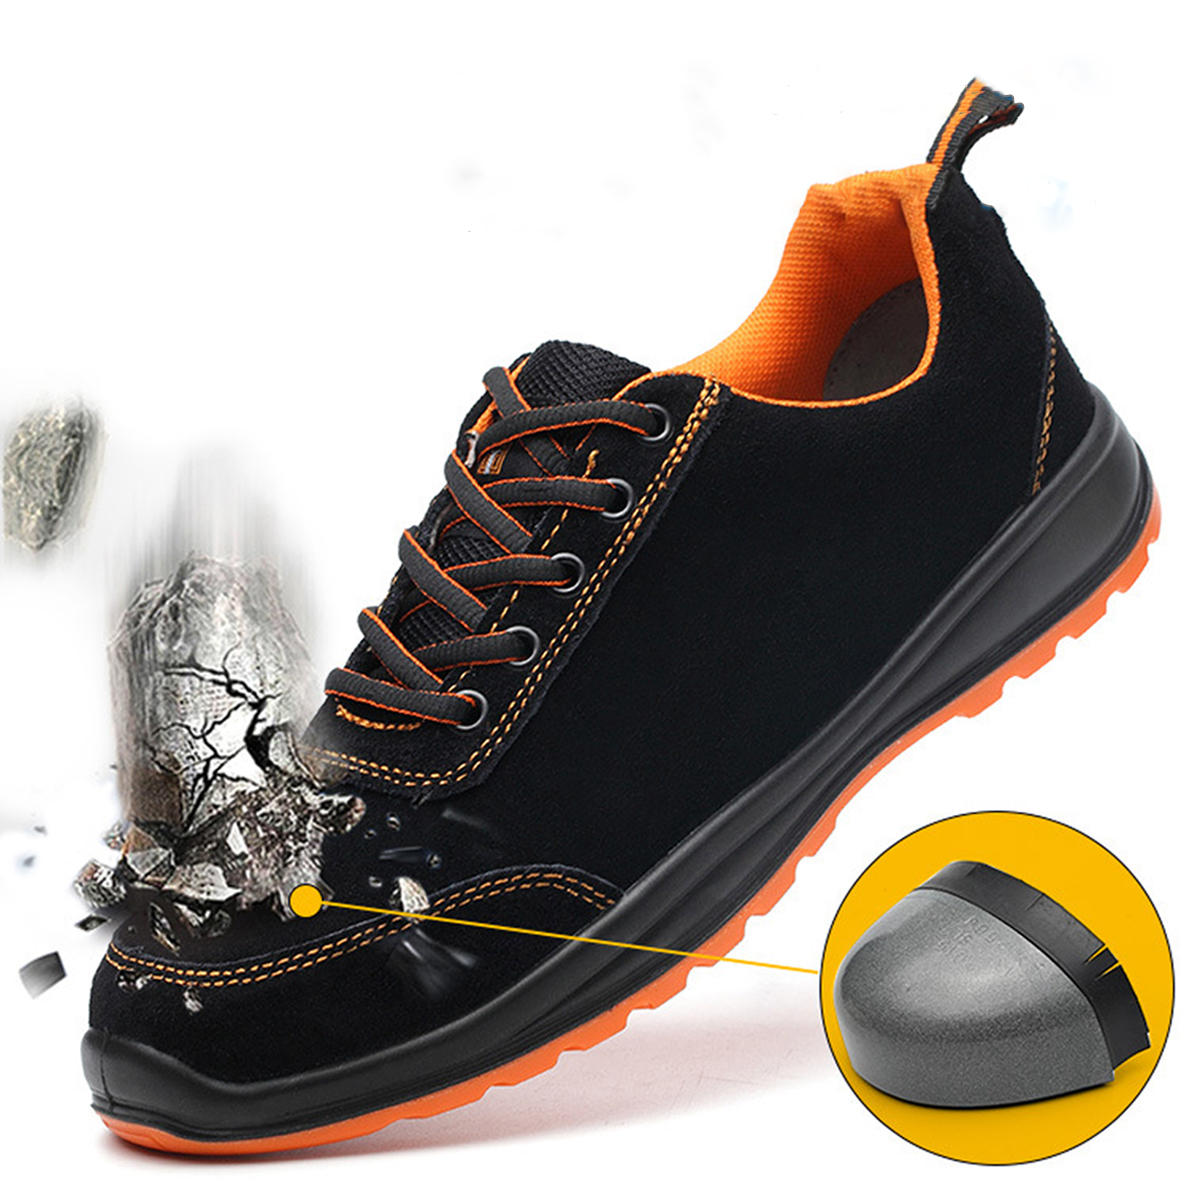 AtreGo Mens Suede Leather Work Shoes Steel Toe Anti-puncture Climbing Safety Shoes - 1